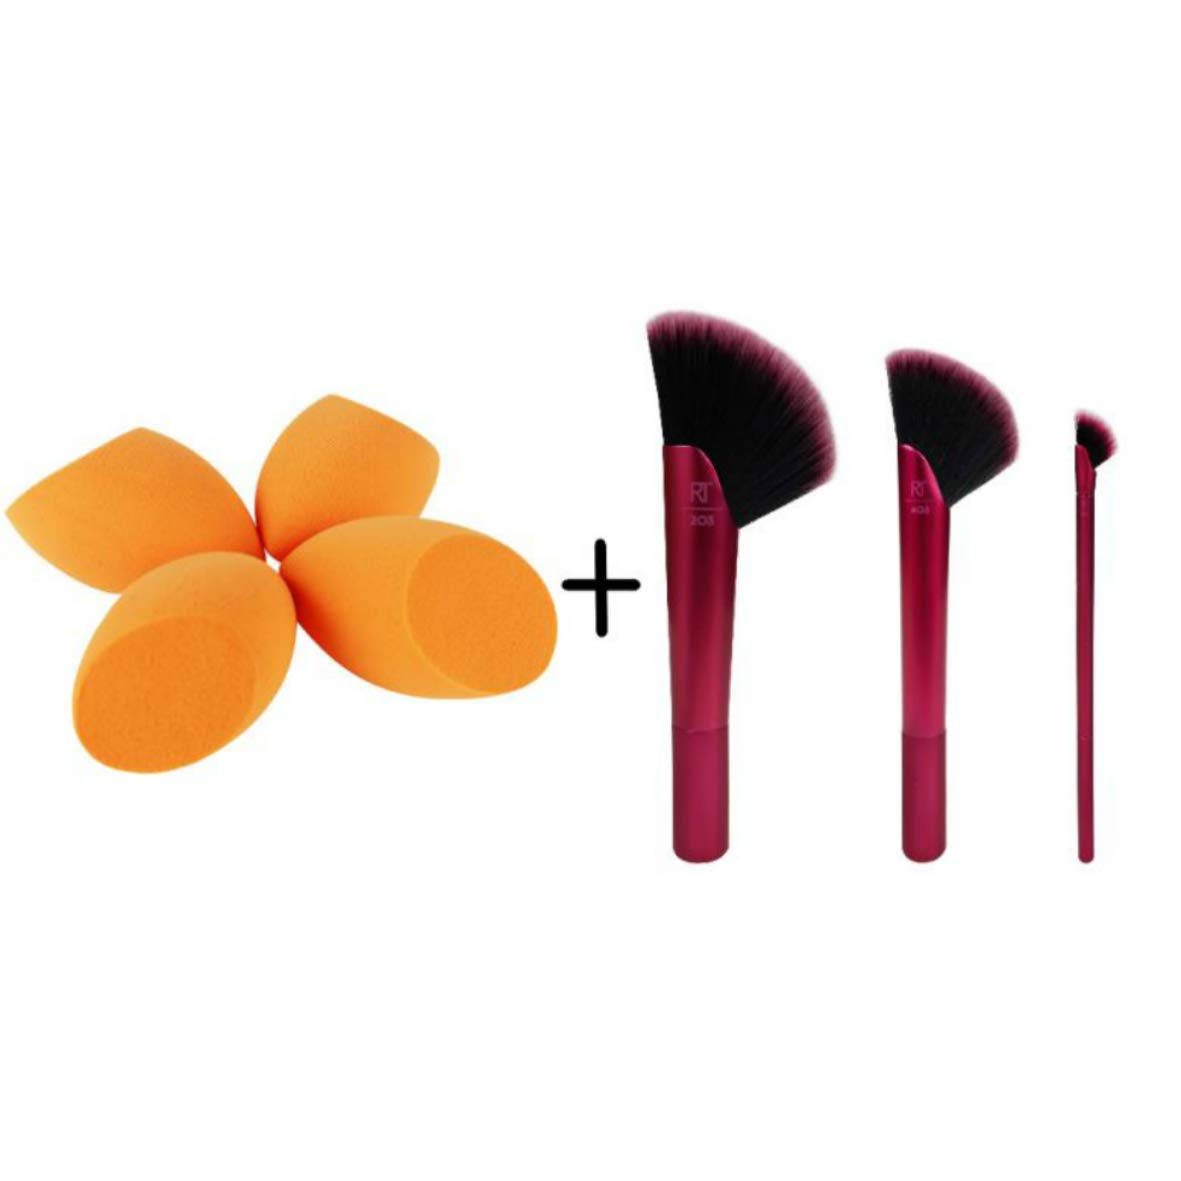 Real Techniques Rebel Edge Makeup Brush Trio with 4 Miracle Complexion Sponge Blenders, Ideal for Foundation, Bronzer, Eyeshadow, and Highligher, Set of 7